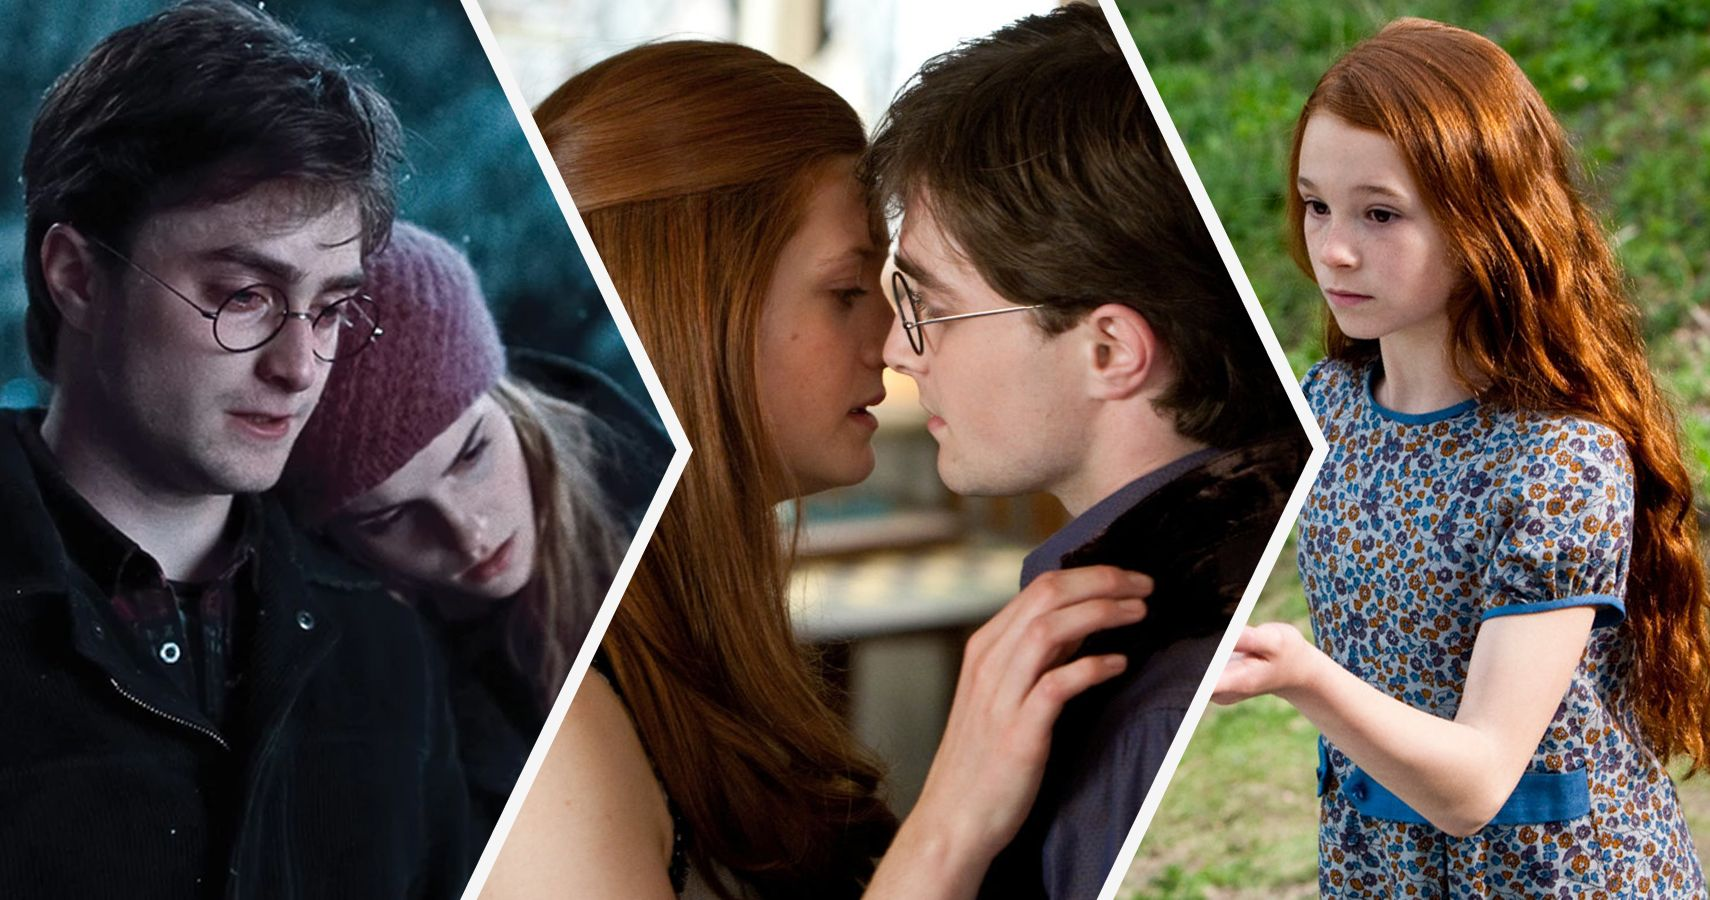 20 Things About Harry and Ginny's Relationship That Make No Sense